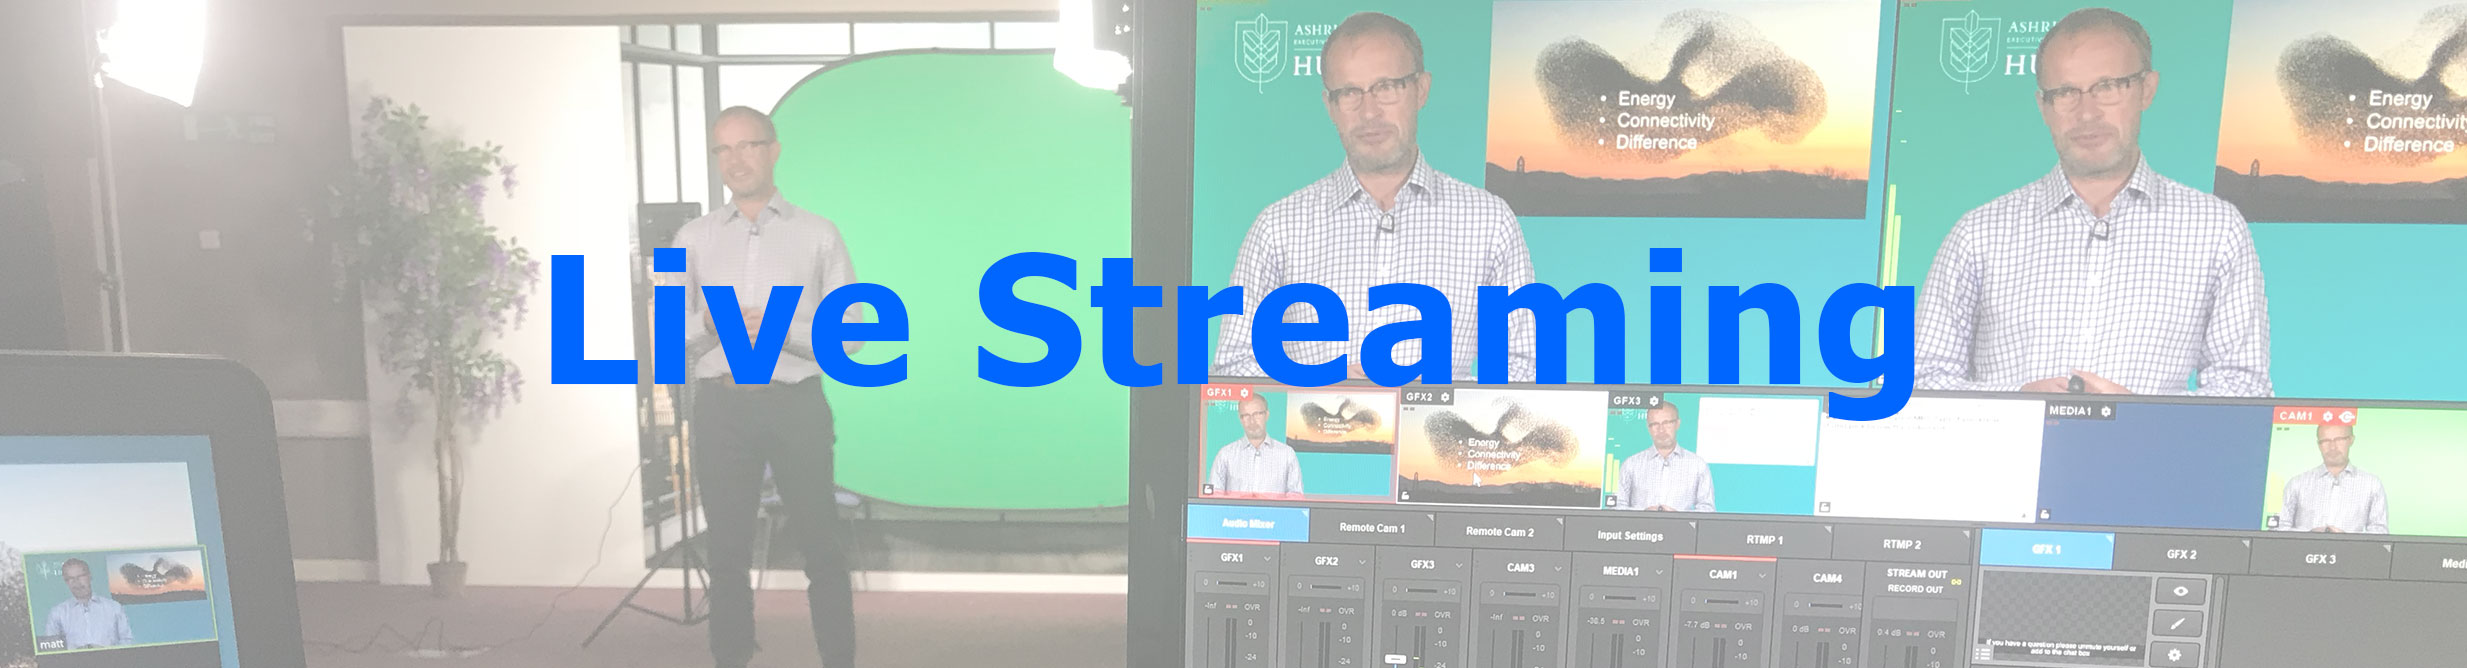 Live Streaming Square Pixel Productions